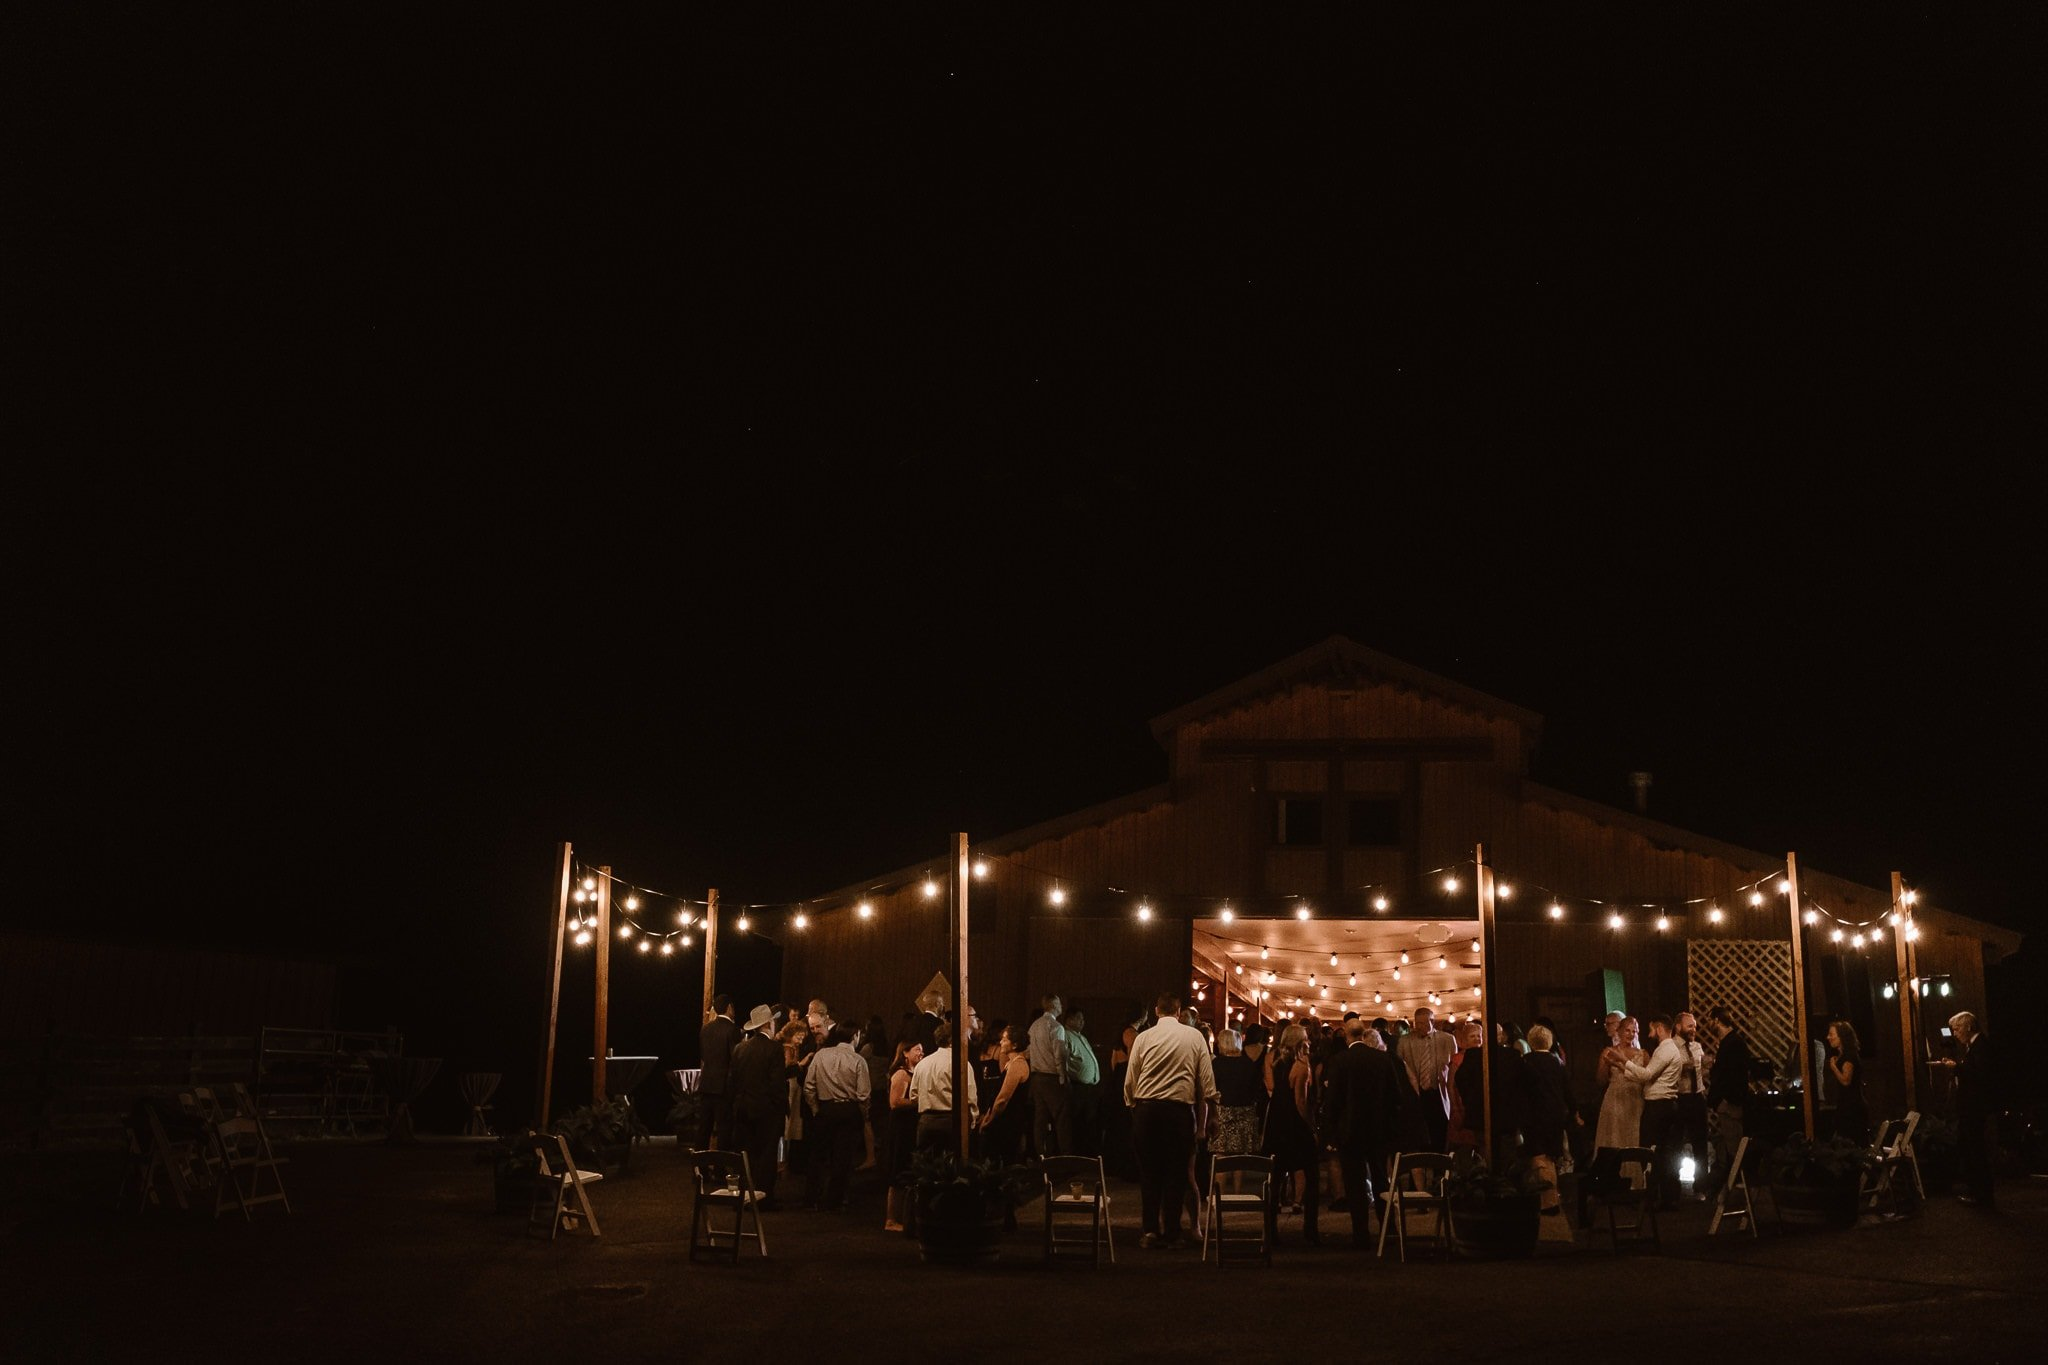 Steamboat Springs wedding photographer, La Joya Dulce wedding, wedding reception outdoor dance floor under market lights, string lights